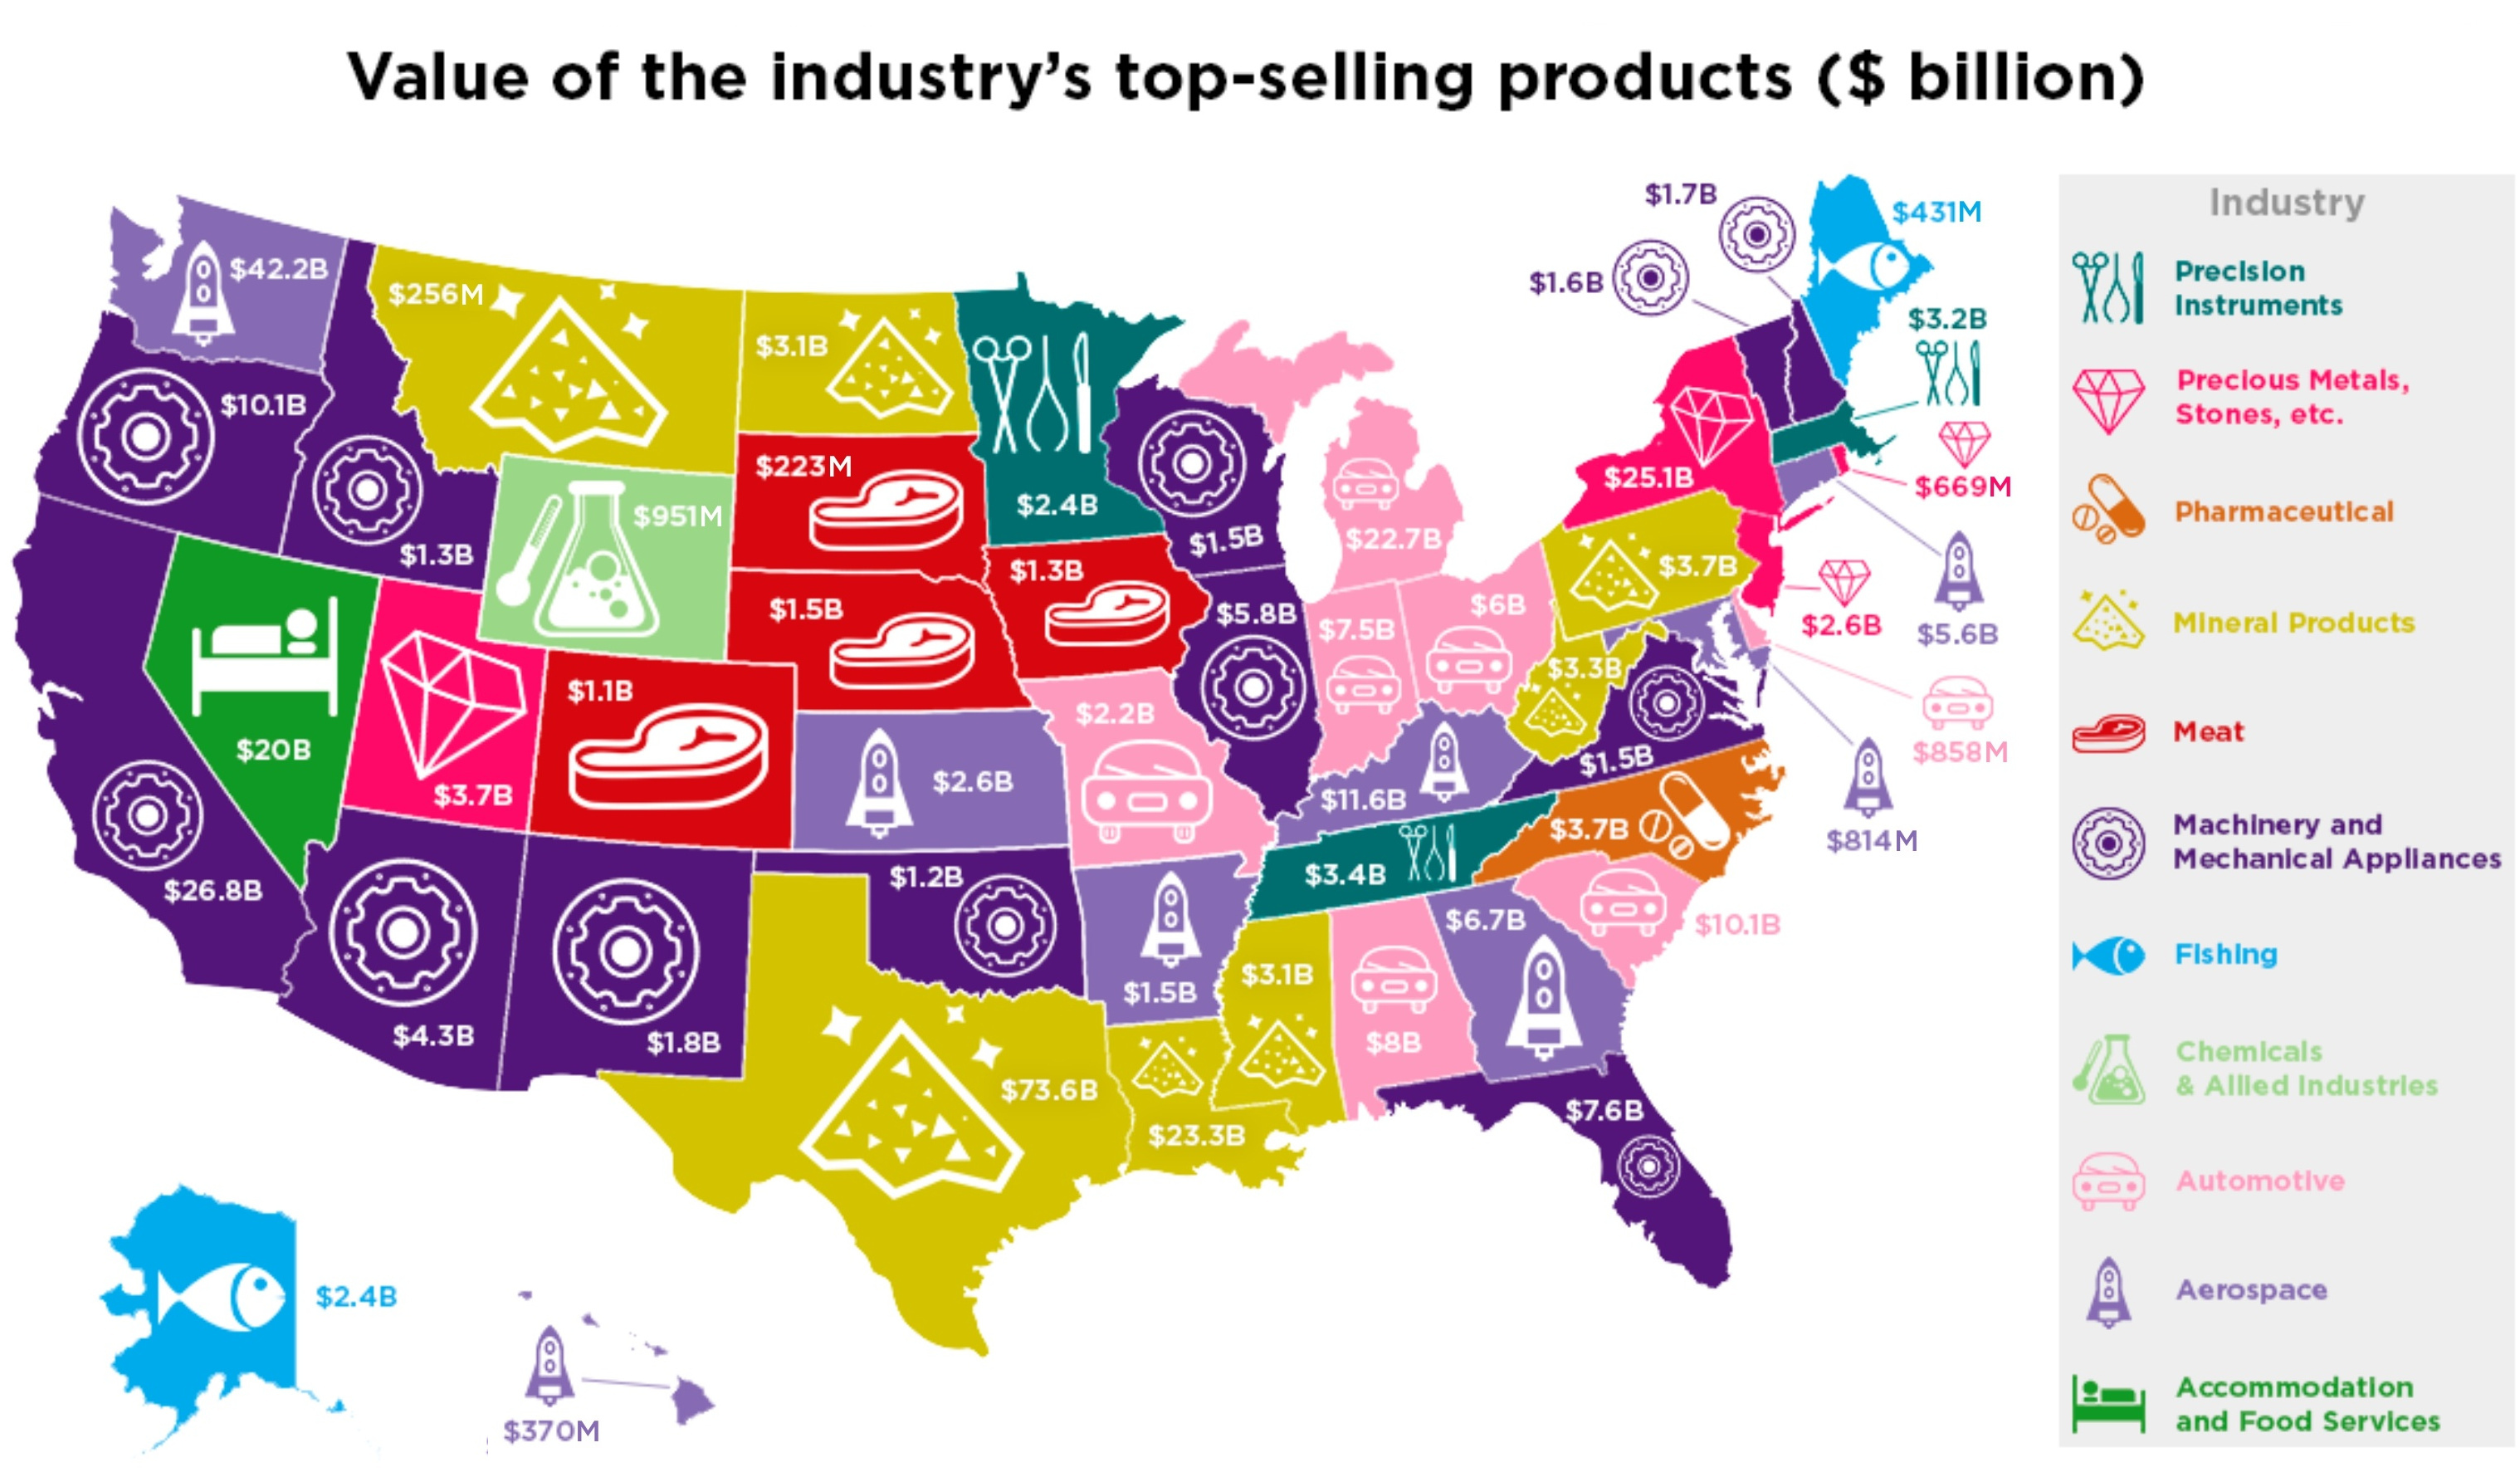 united states industry map Map: The Most Profitable Industry in Every U.S. State